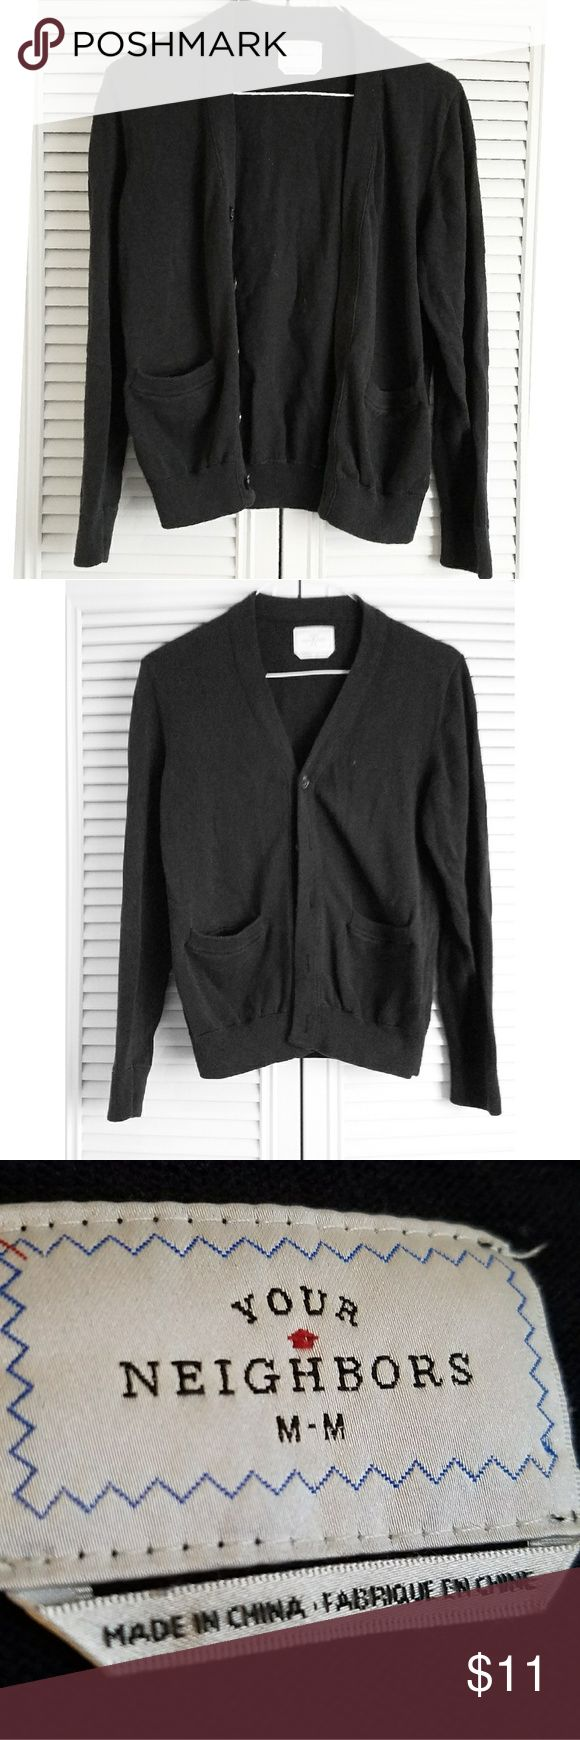 Your Neighbors Black Boyfriend Cardigan Black cardigan, loose fit. Super comfortable! Urban Outfitters Sweaters Cardigans